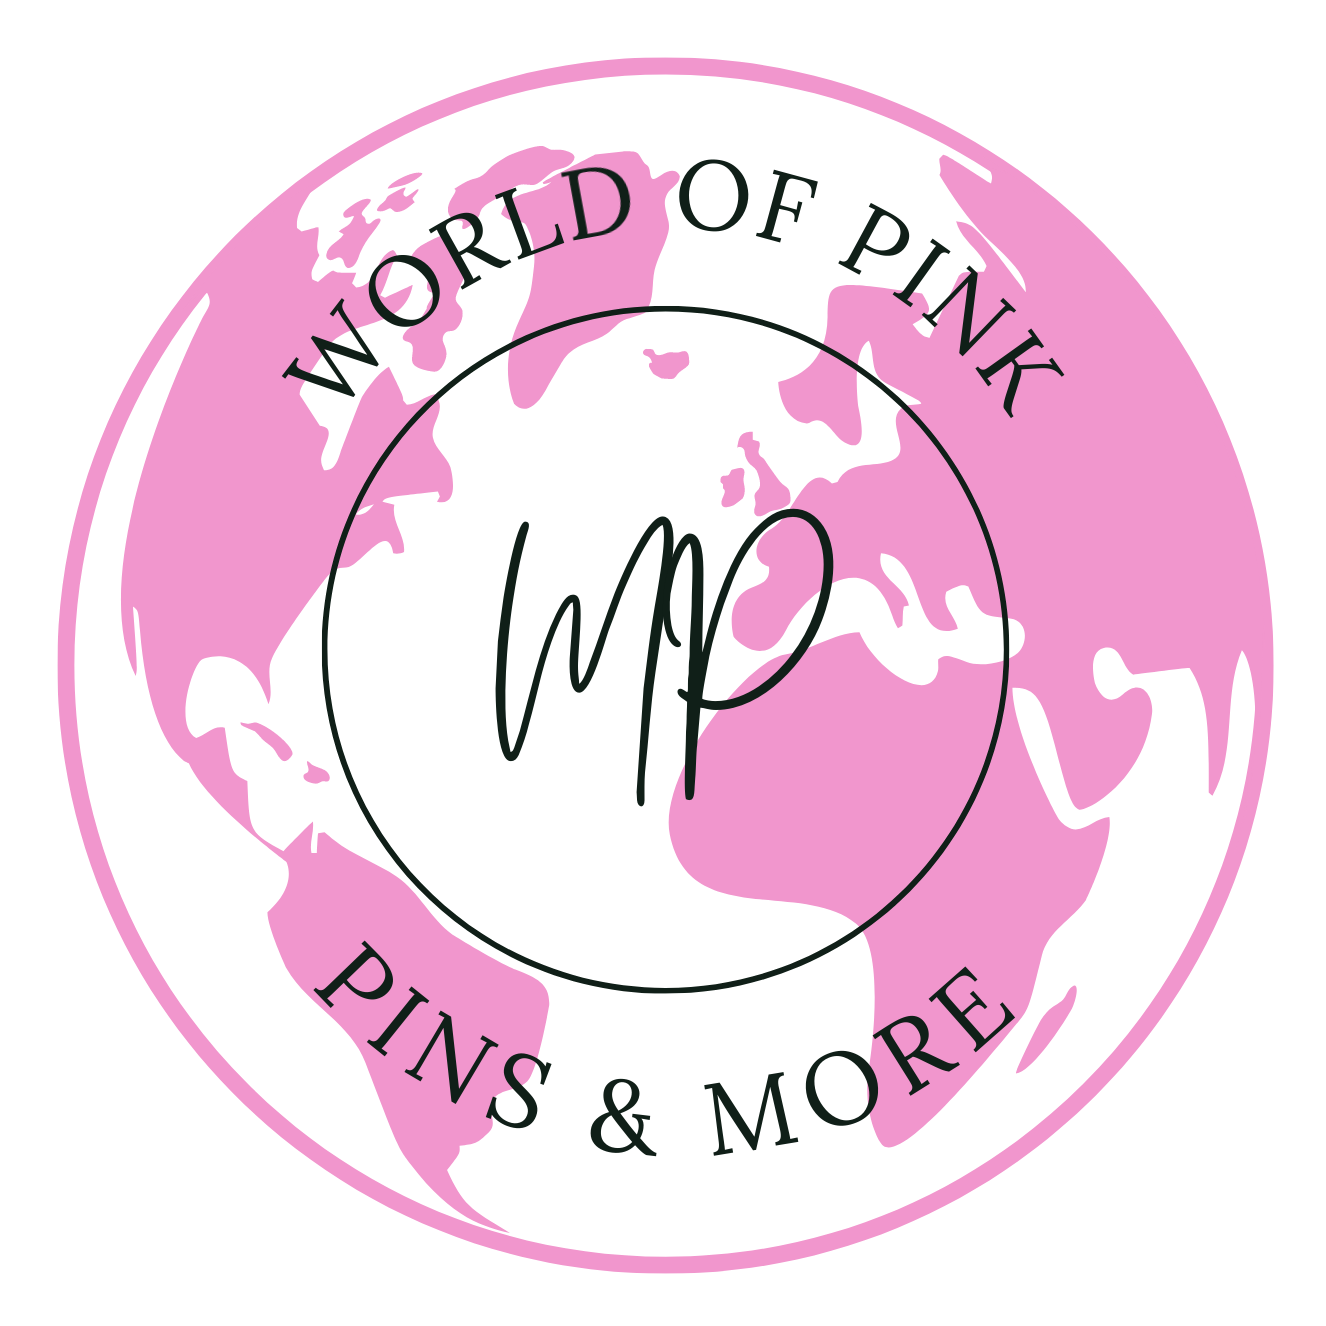 WORLD_OF_PINK-3